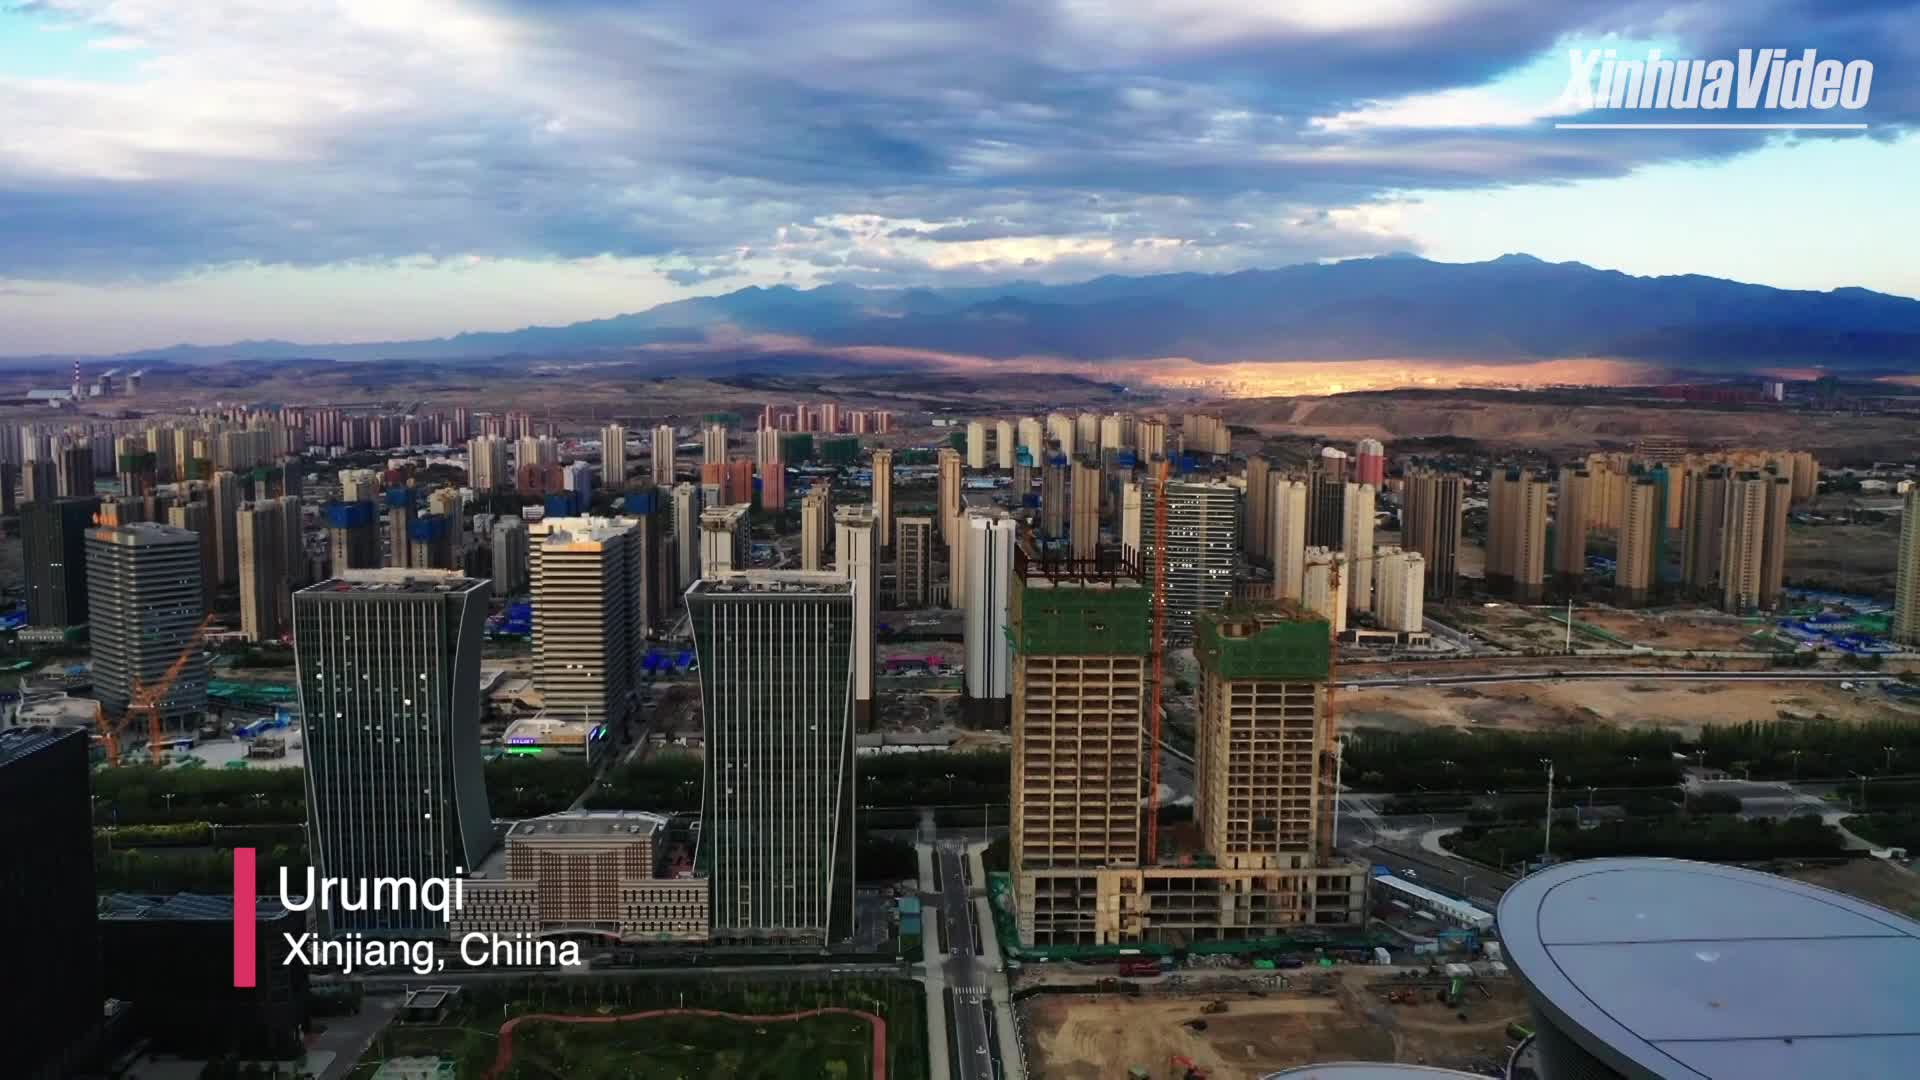 China's Urumqi offers free treatment to COVID-19 cases